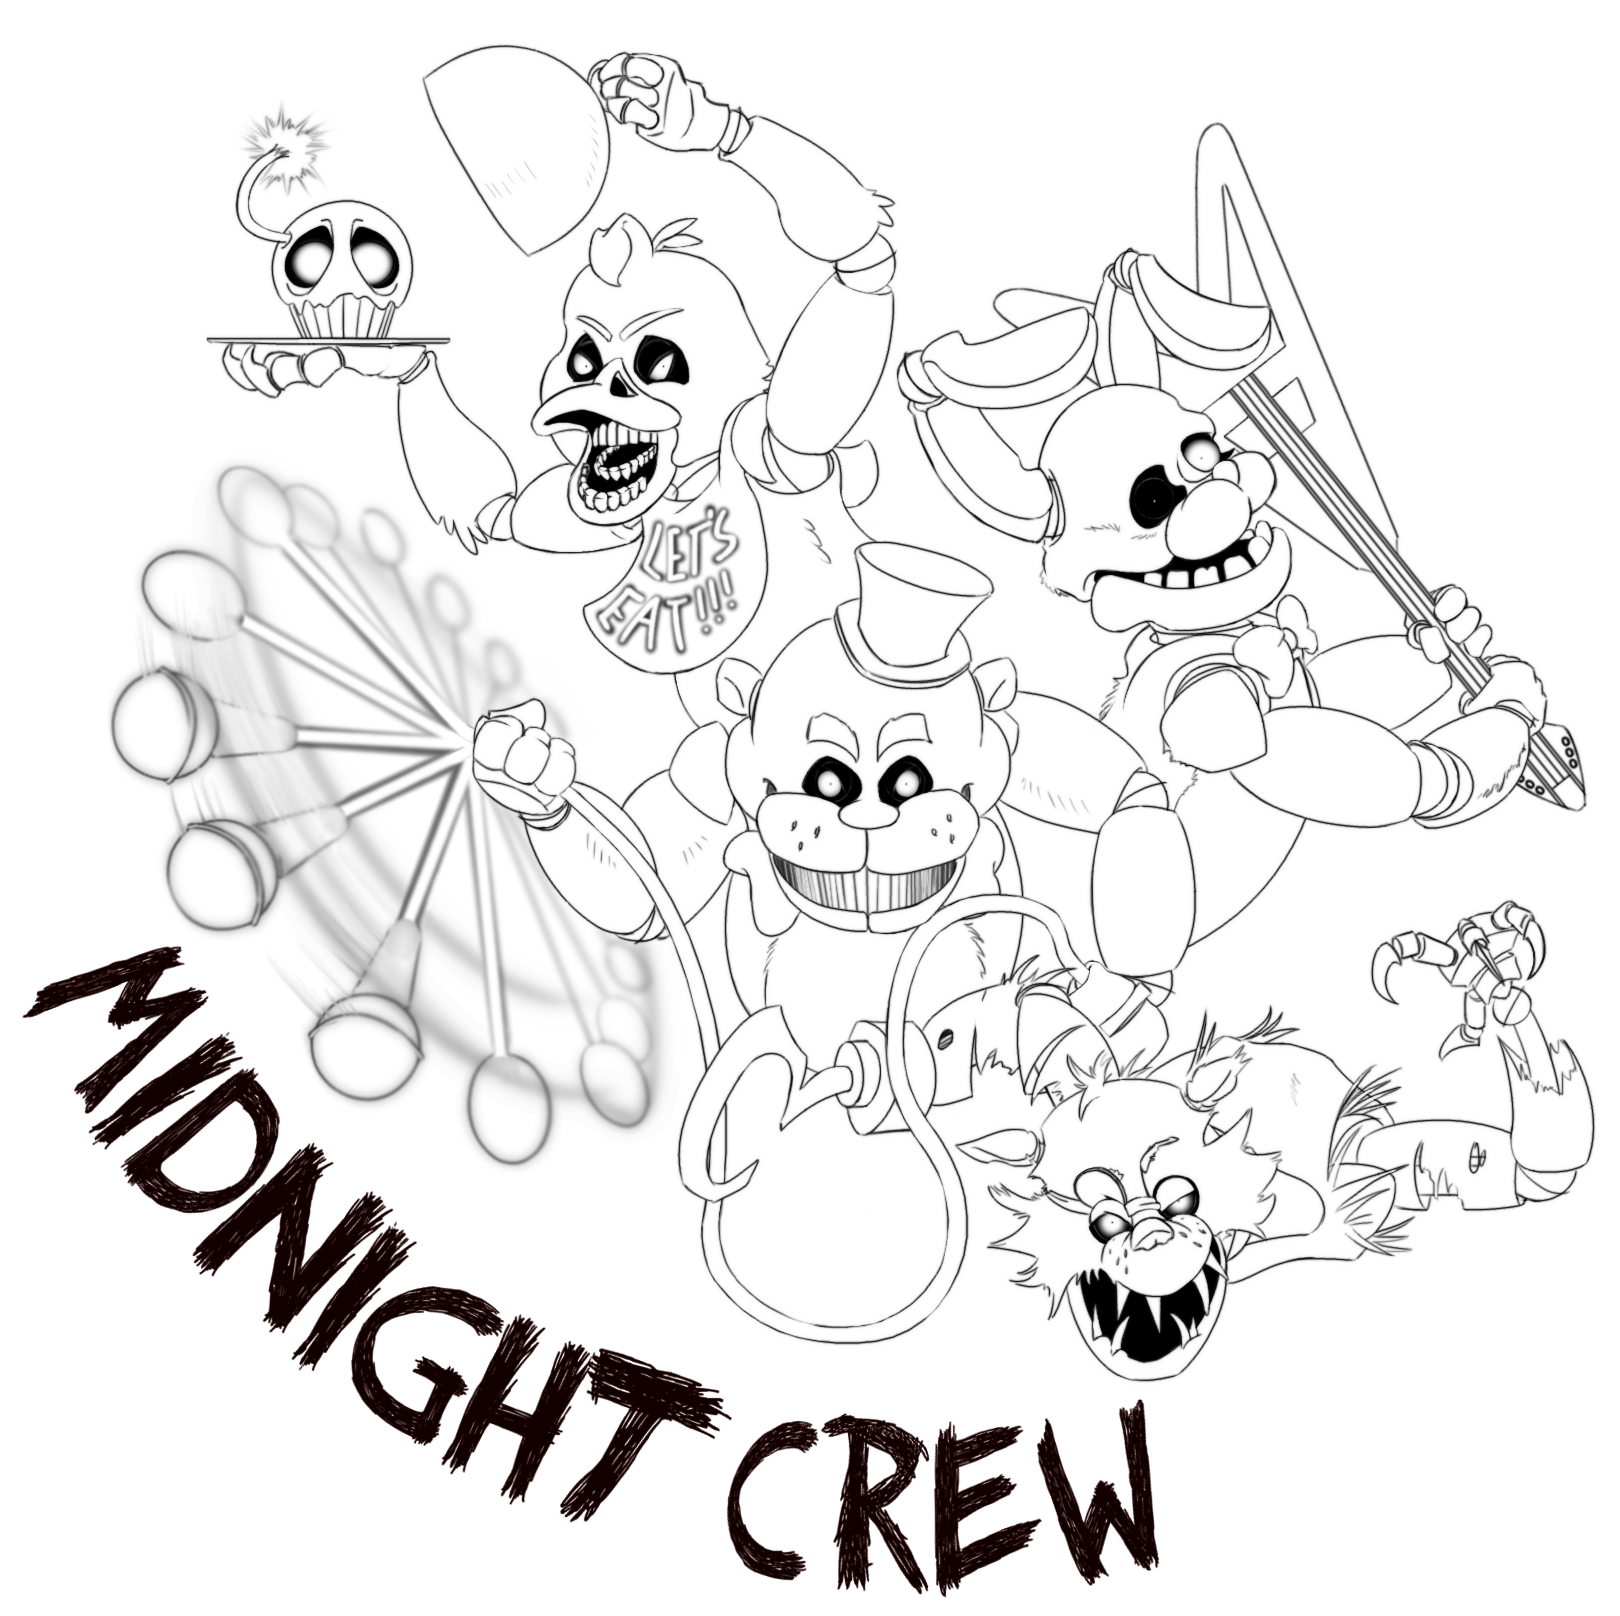 Fnaf Printable Coloring Pages to Print Free Coloring Sheets